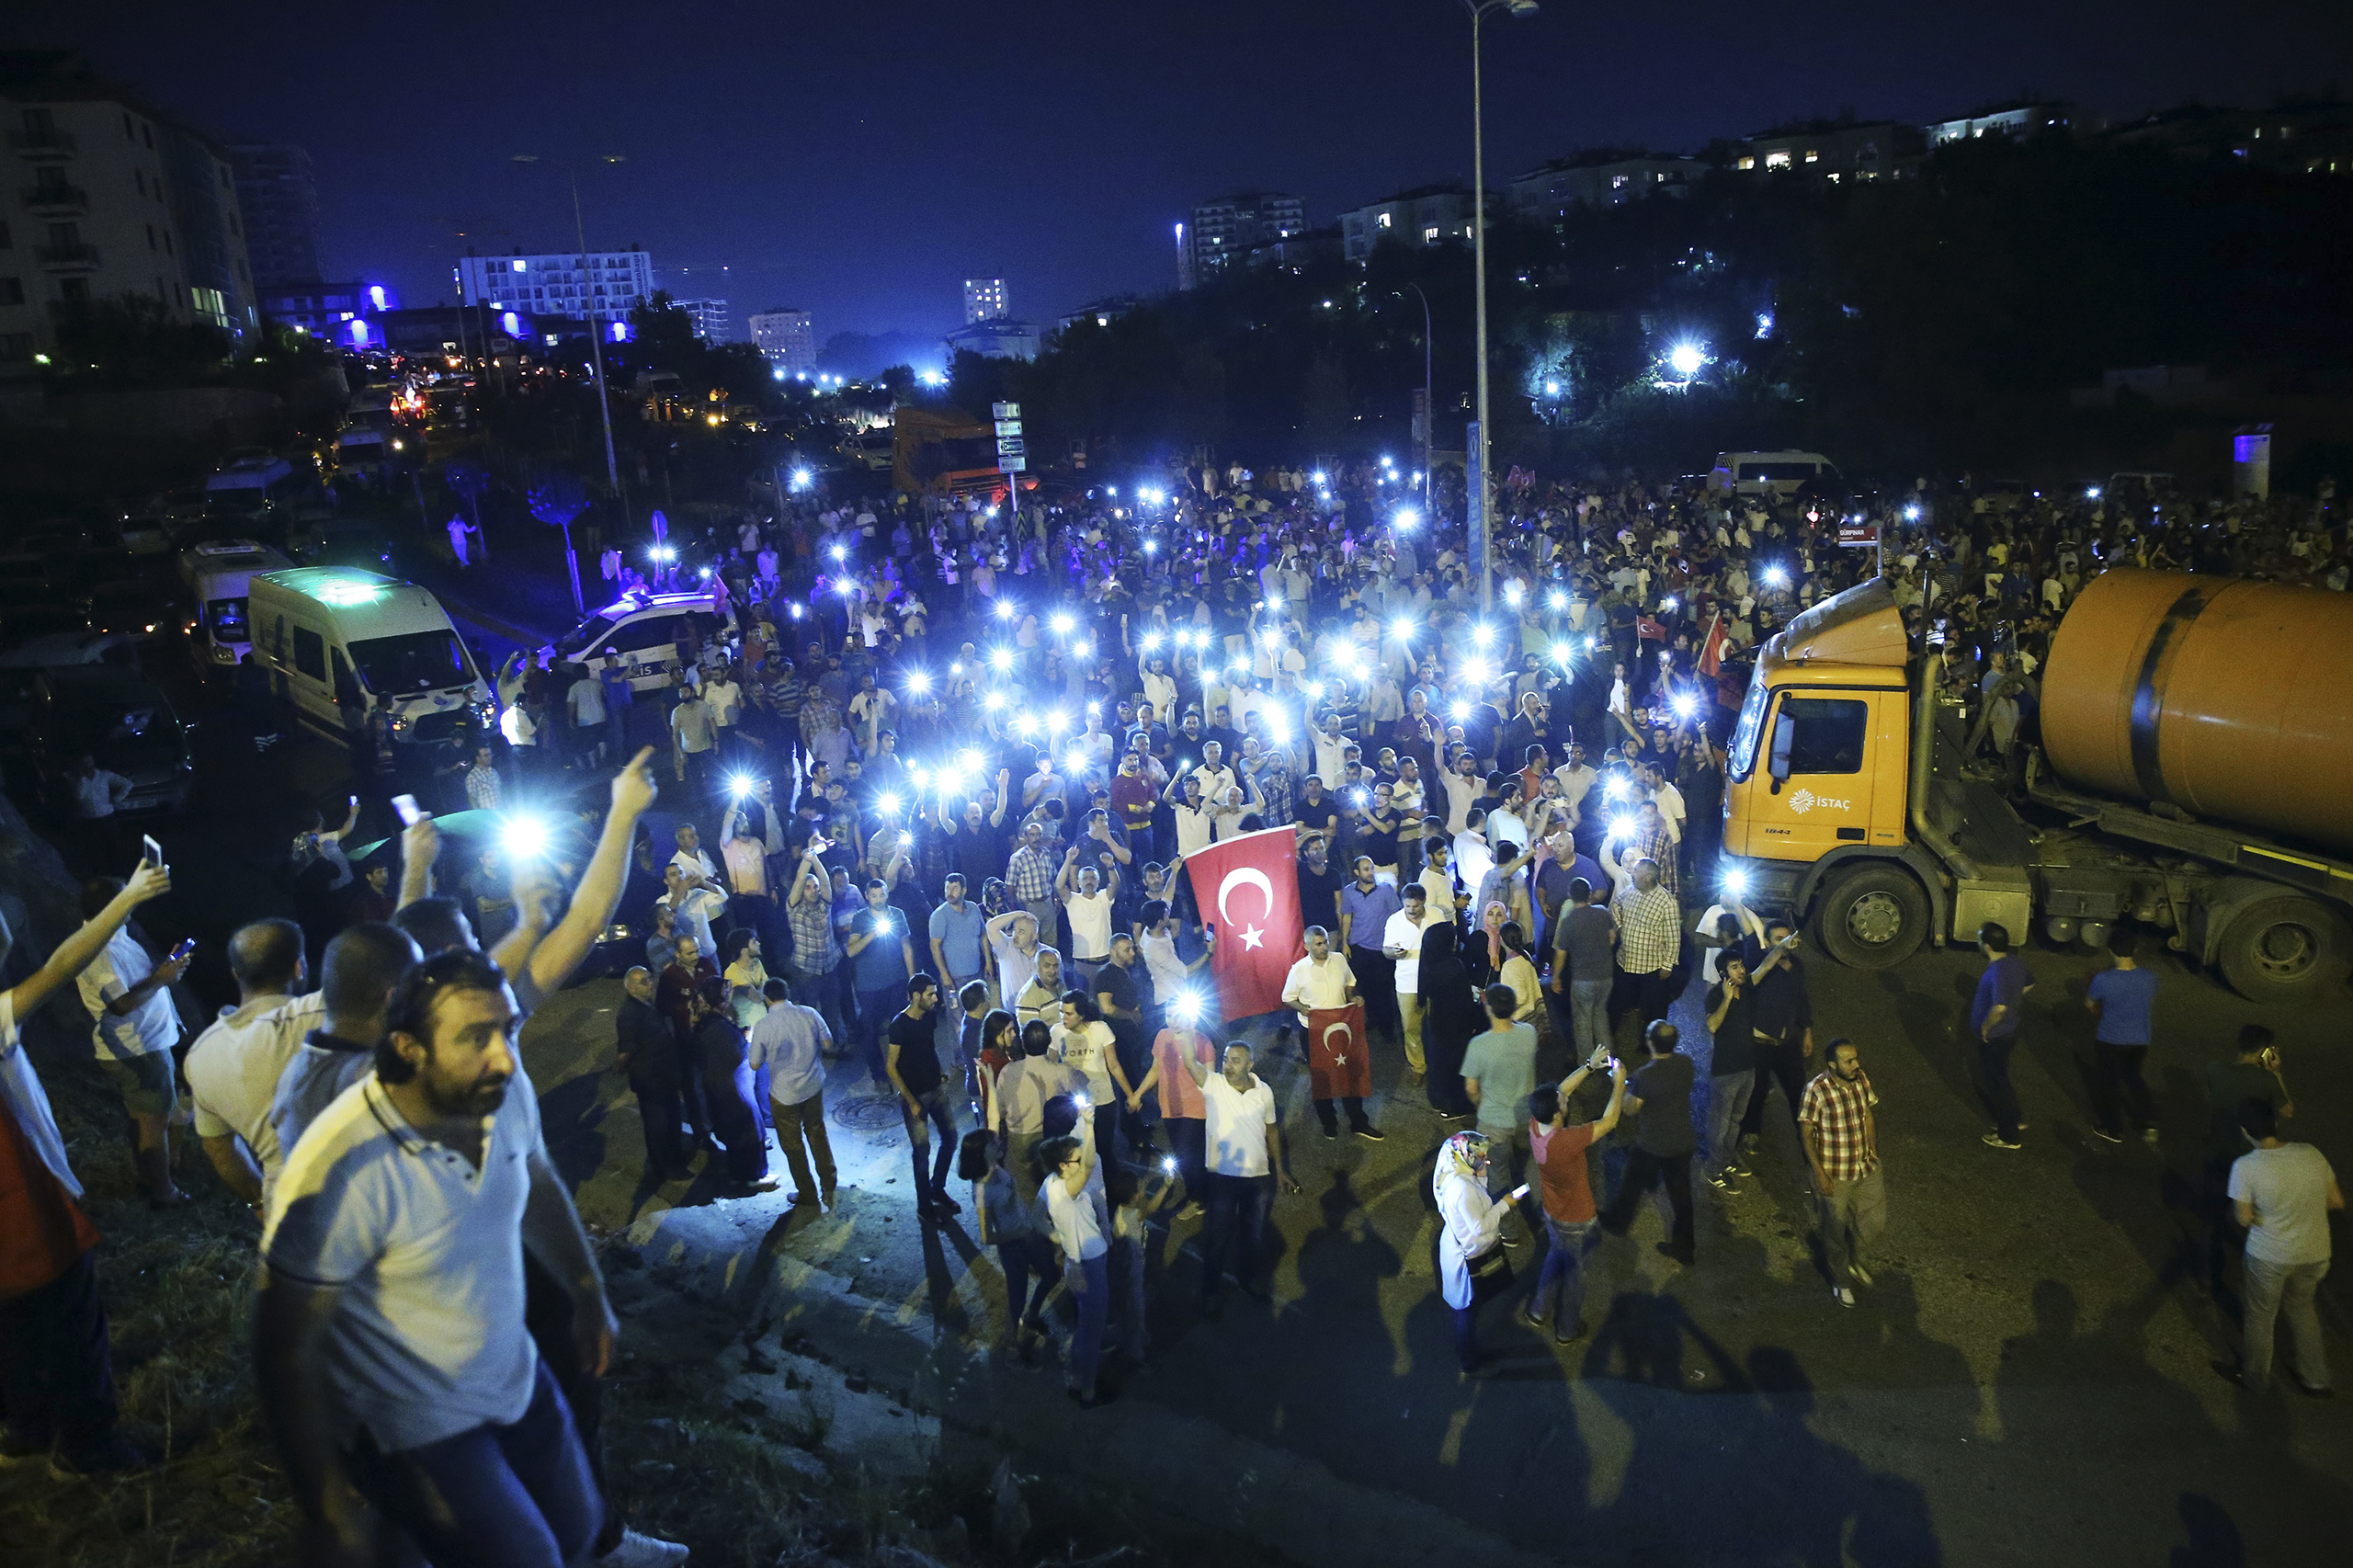 People gather with their mobile phones to react against the military coup attempt in the Tuzla District of Istanbul, Turkey, on July 16, 2016.